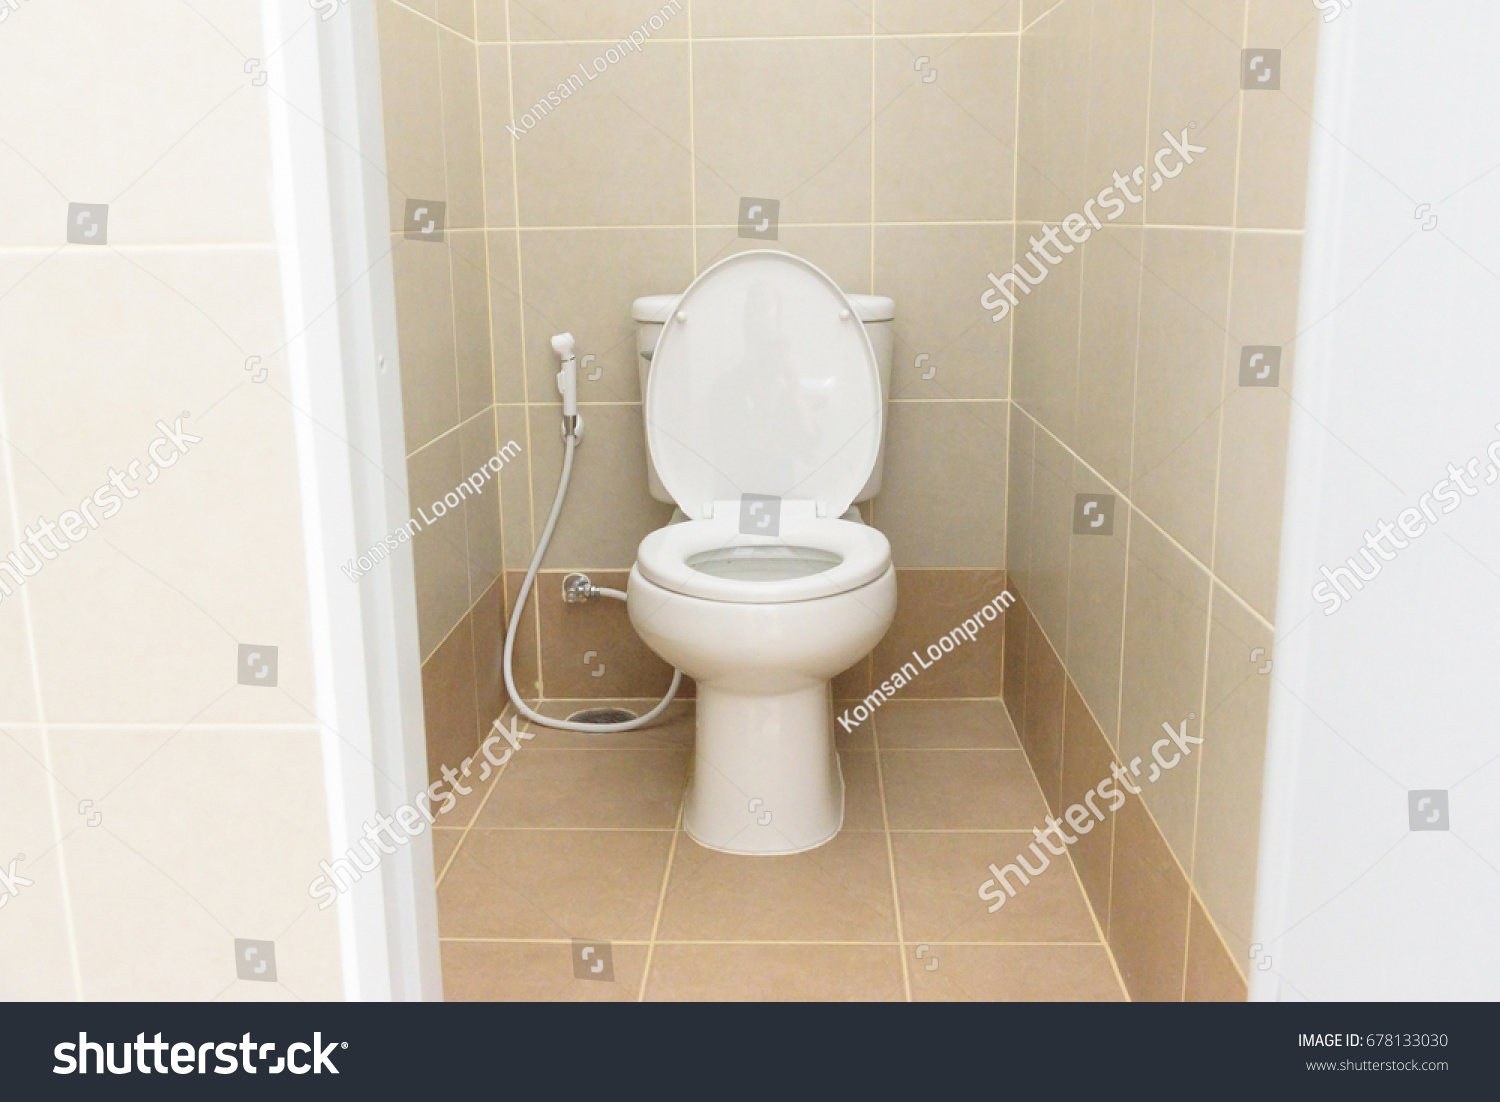 White Toilet Bowl Brown Tiles Bathroom Stock Photo (Royalty Free ...